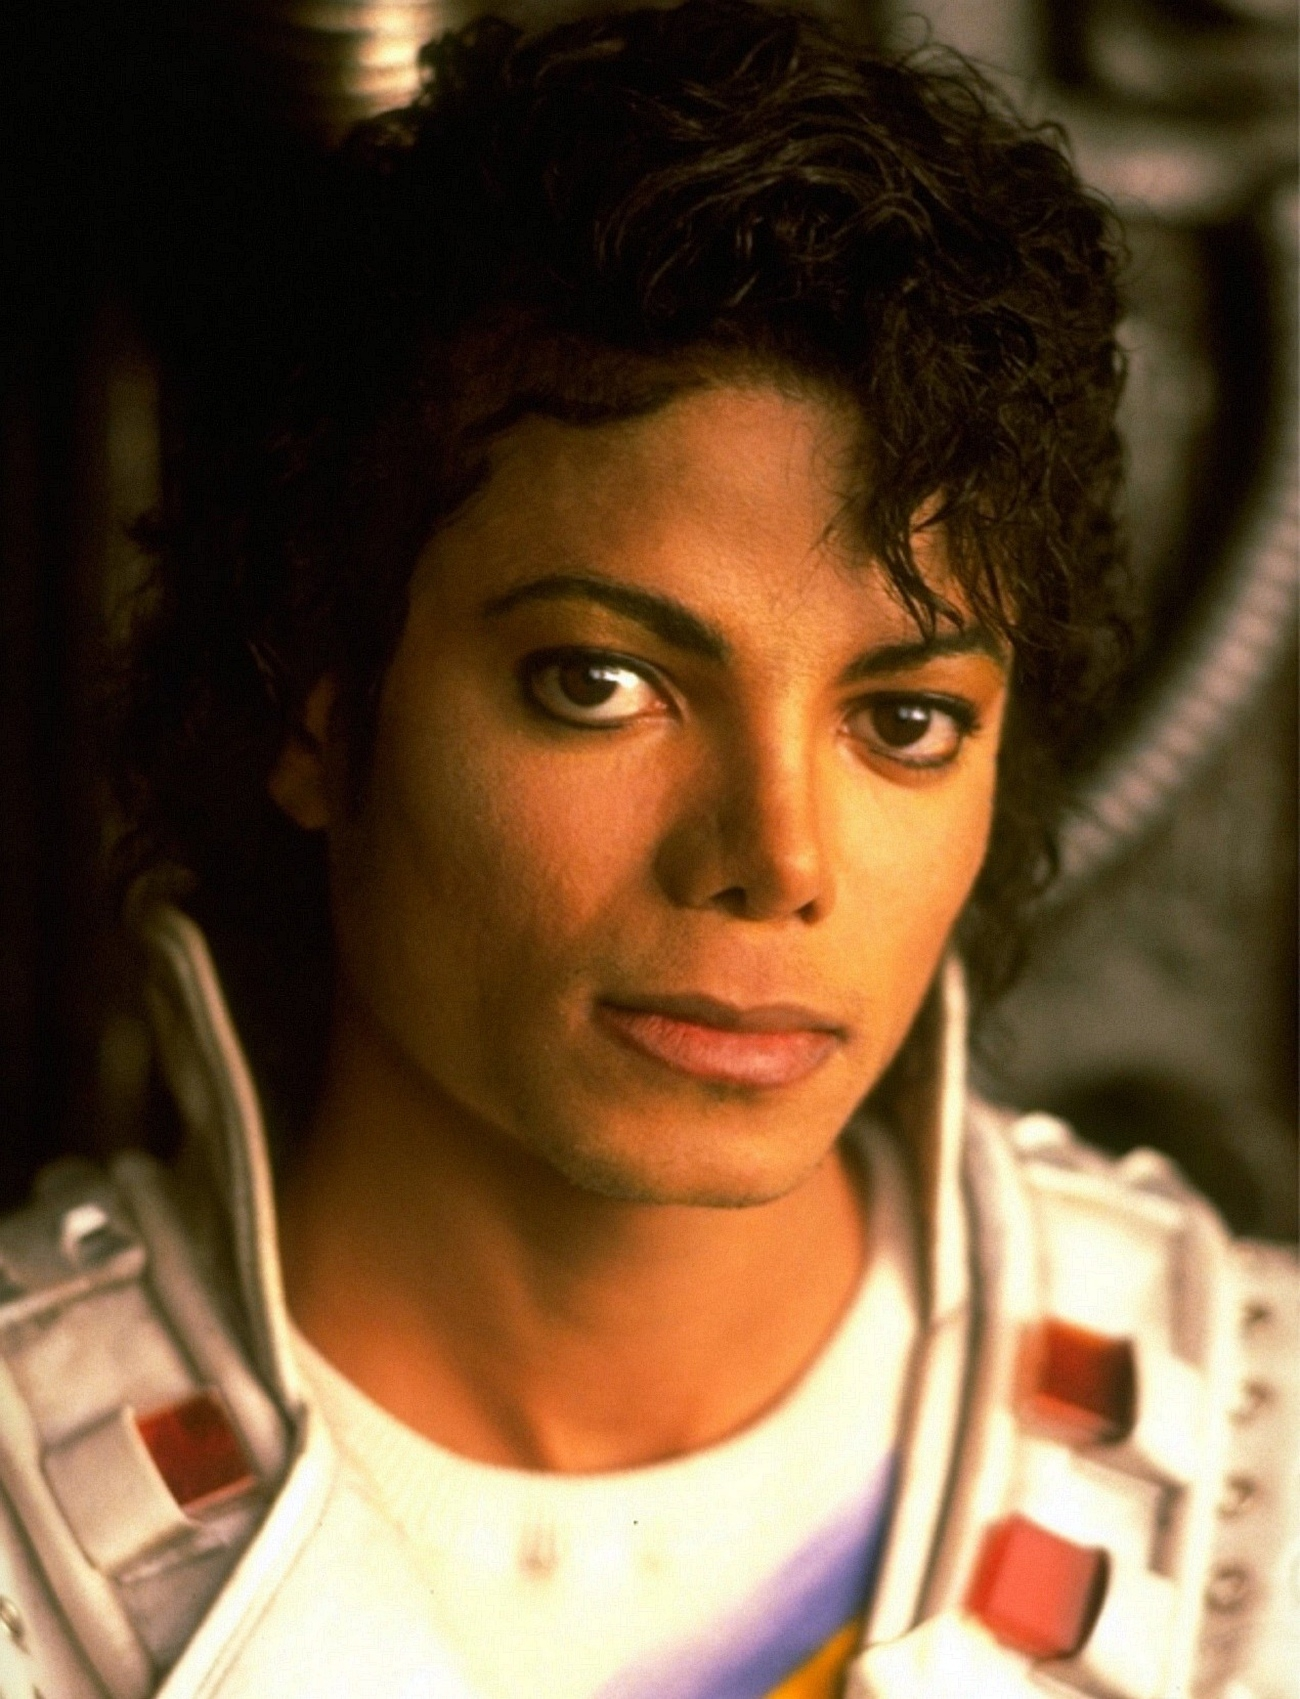 The late and great Michael Jackson